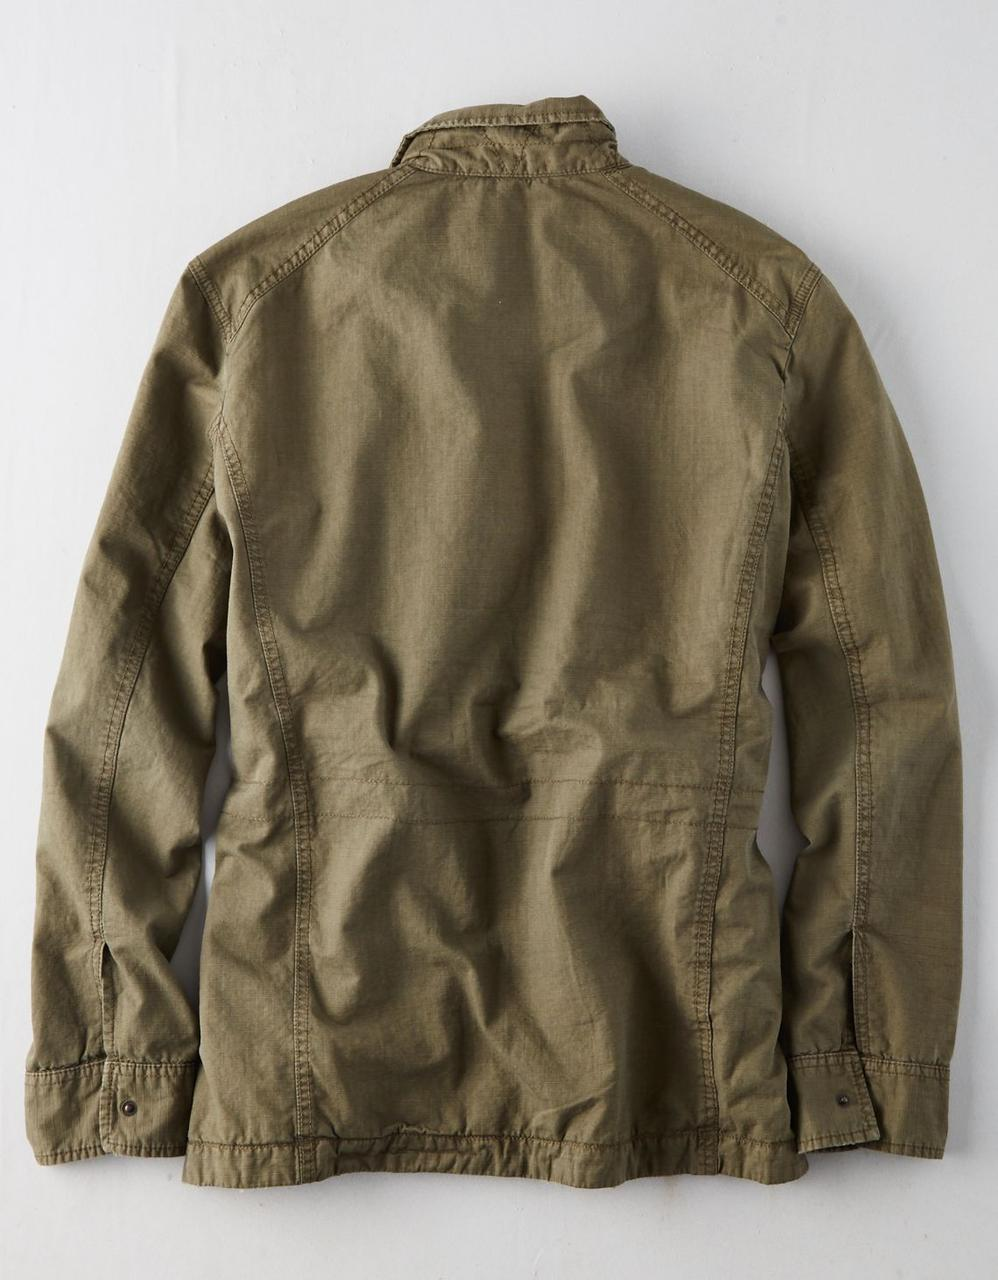 1 25 Old Navy Twill Military Jacket 60 At Locations Throughout The City Visit Oldnavy